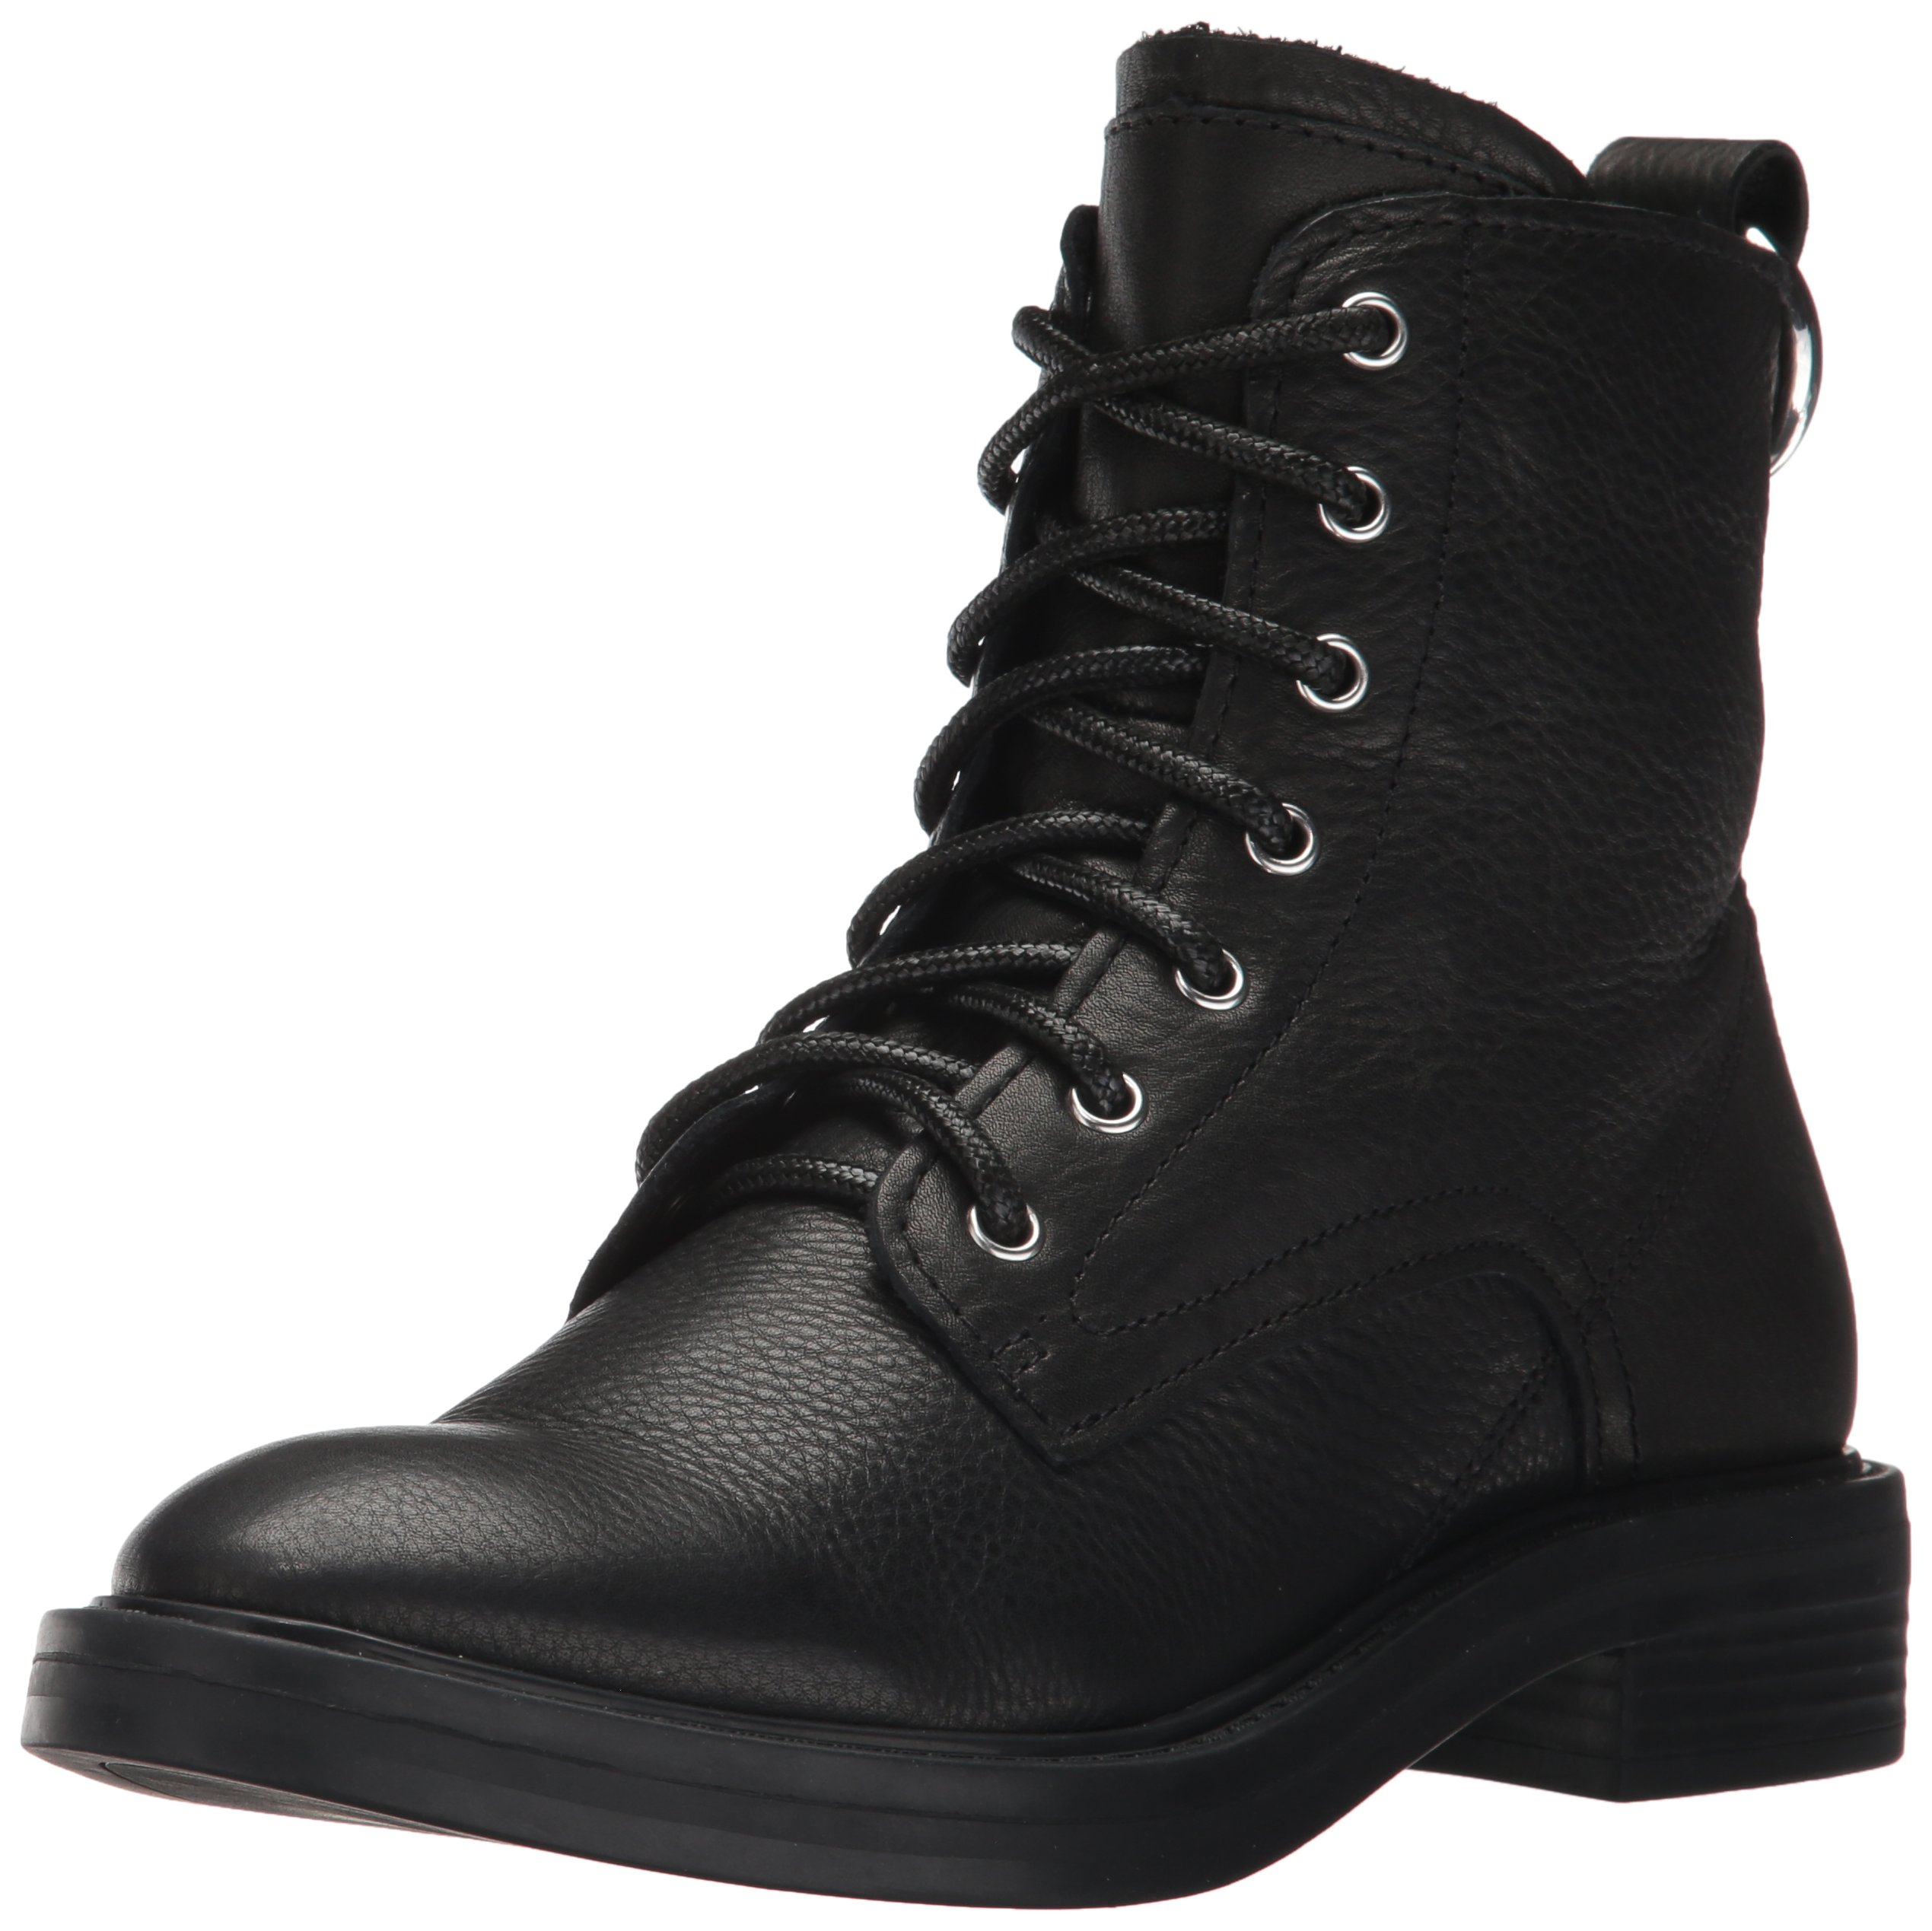 Dolce Vita Women's Bardot Combat Boot, Black Leather, 9.5 Medium US